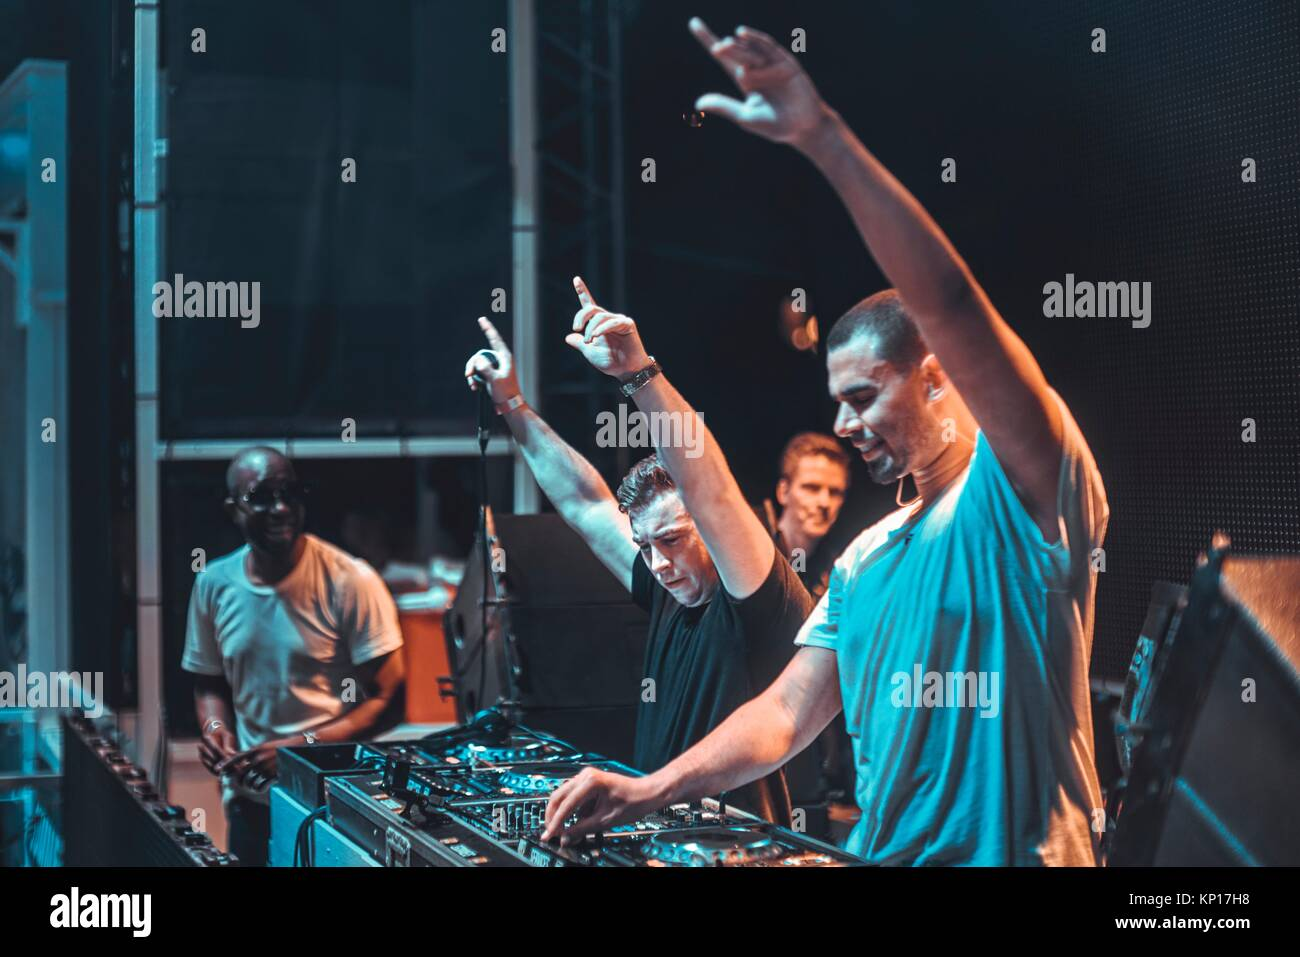 Dj hardwell b2b afrojack at music festival starbeach beachflirt dj hardwell b2b afrojack at music festival starbeach beachflirt dress in white party on 17 july 2017 in hersonissos crete greece they played altavistaventures Image collections